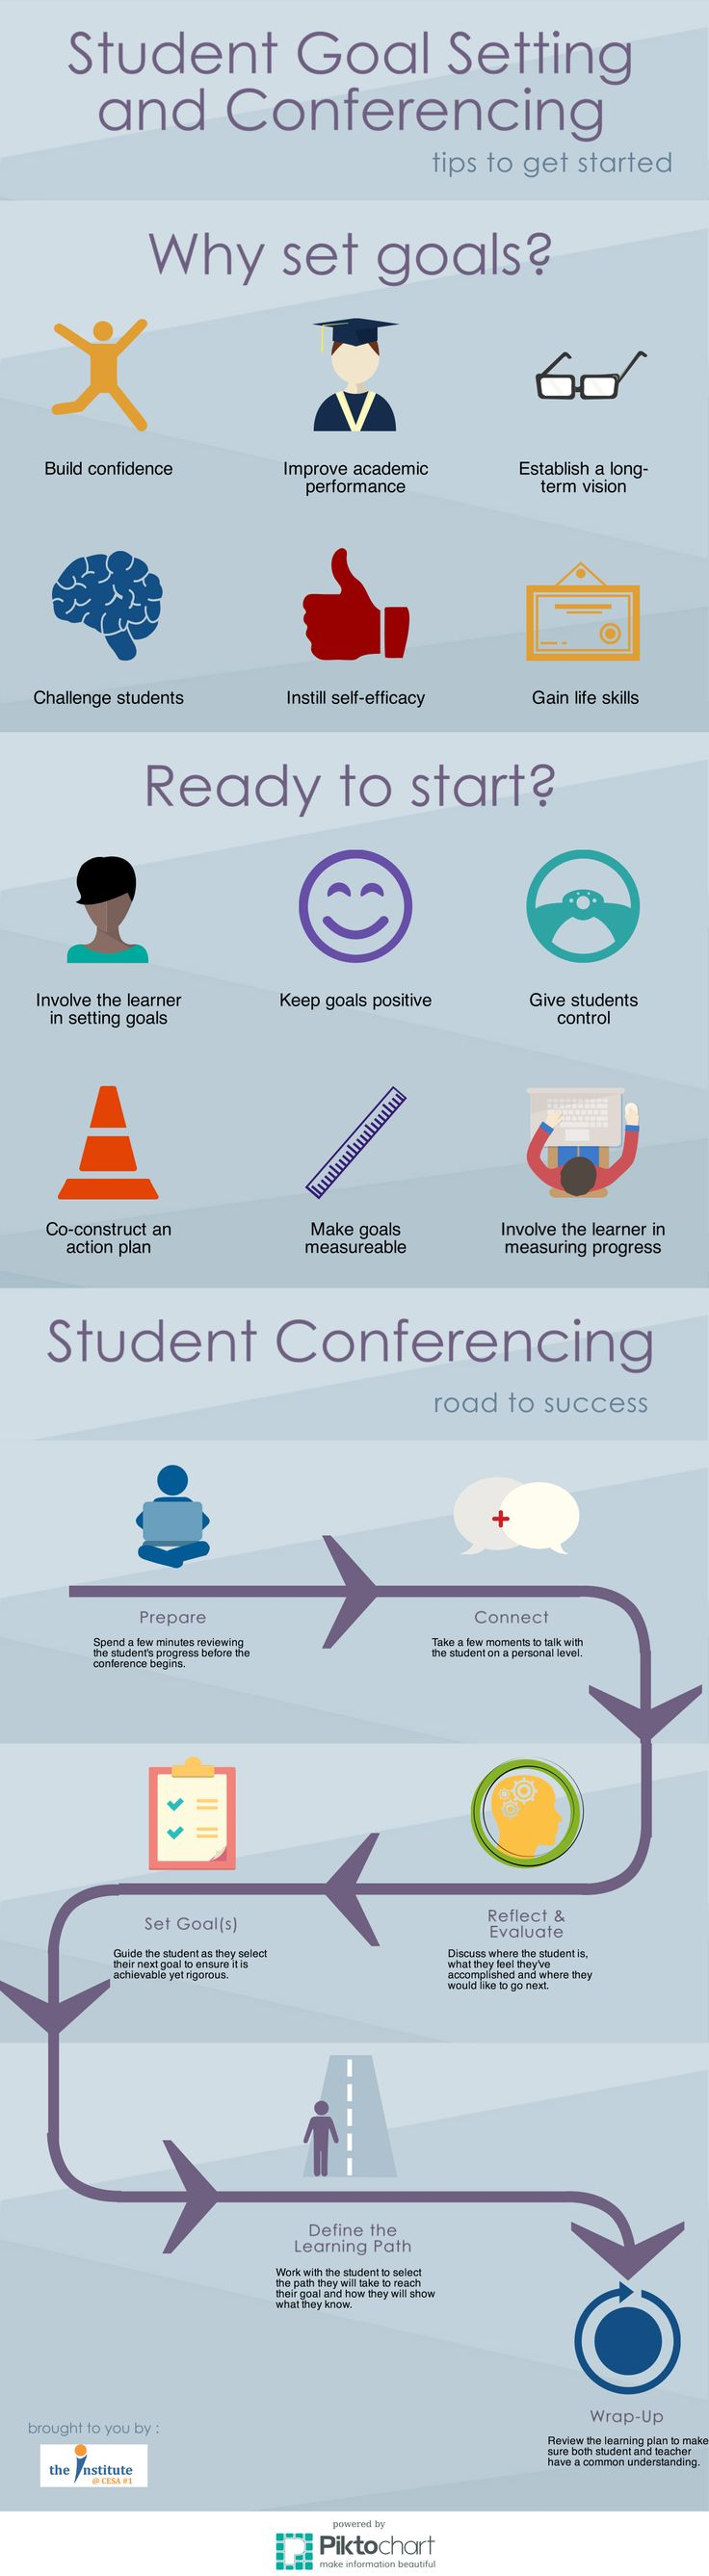 The Institute is excited to release our new infographic on student goal setting based on two recent blog posts (here and here) by Jim Rickabaugh. The infographic also contains tips on preparing for…